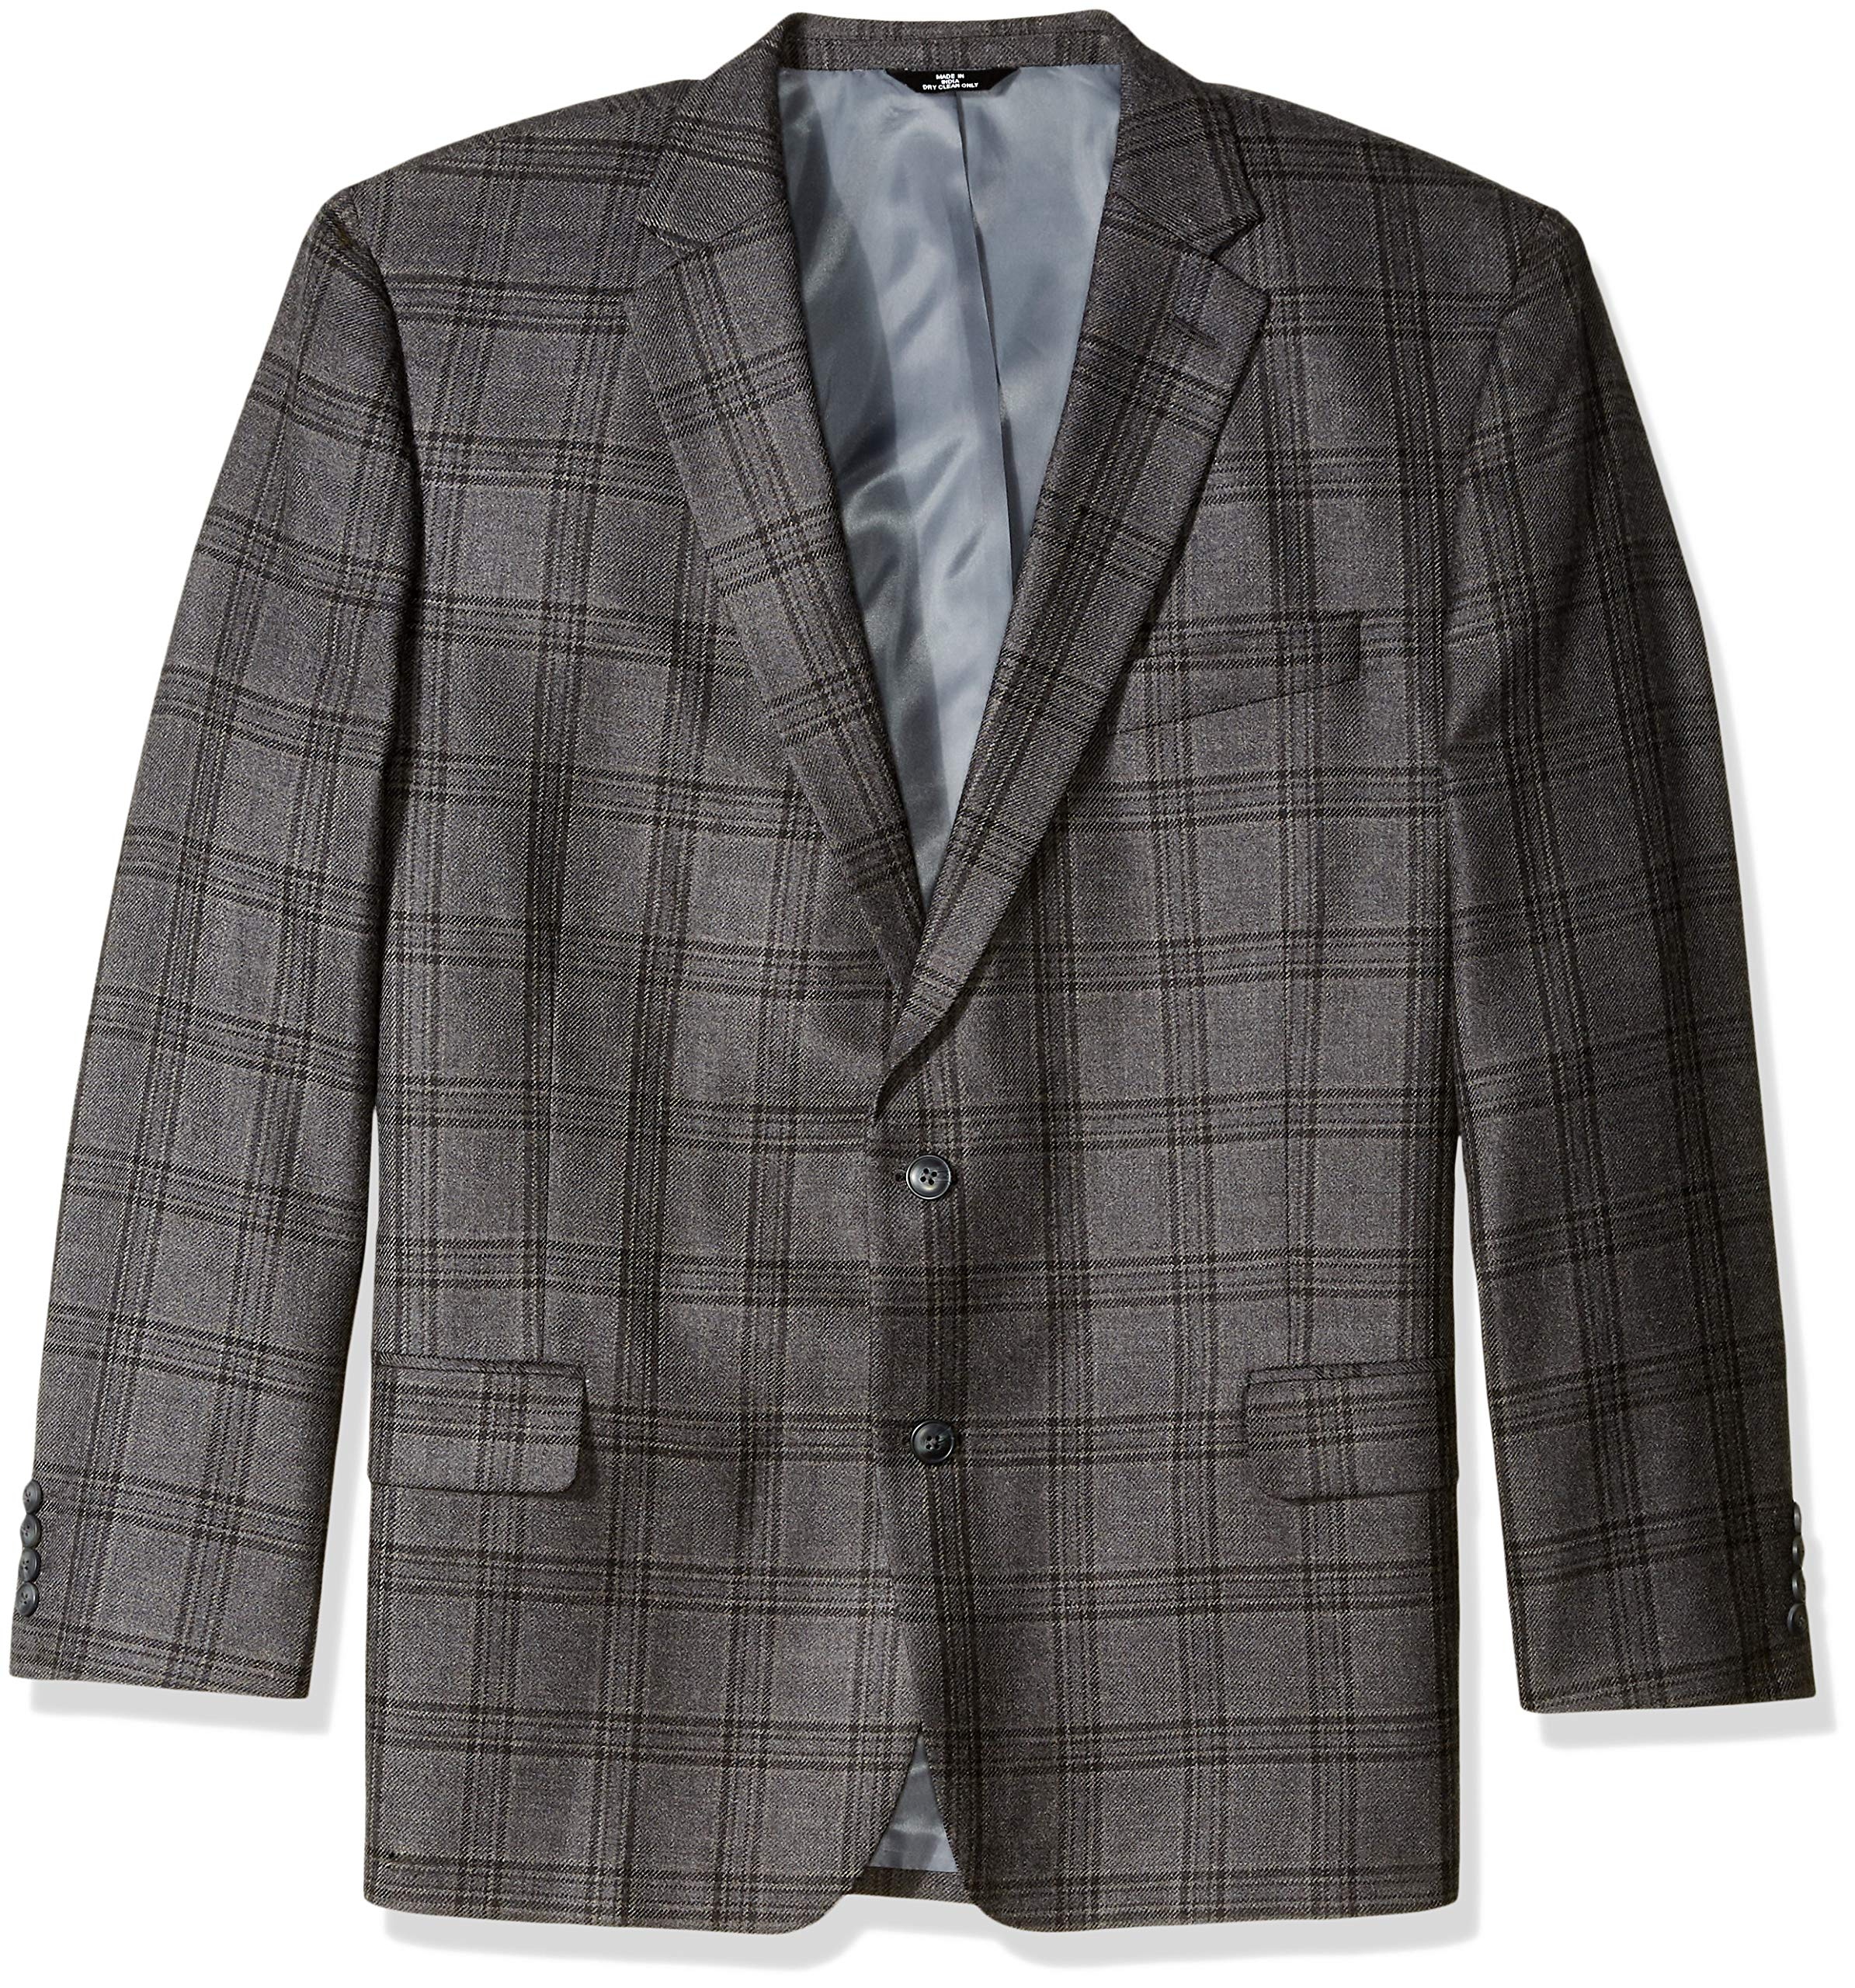 Haggar Men's Tall B&T Plaid Lambswool Classic Fit Sport Coat, Dark Heather Grey 52L